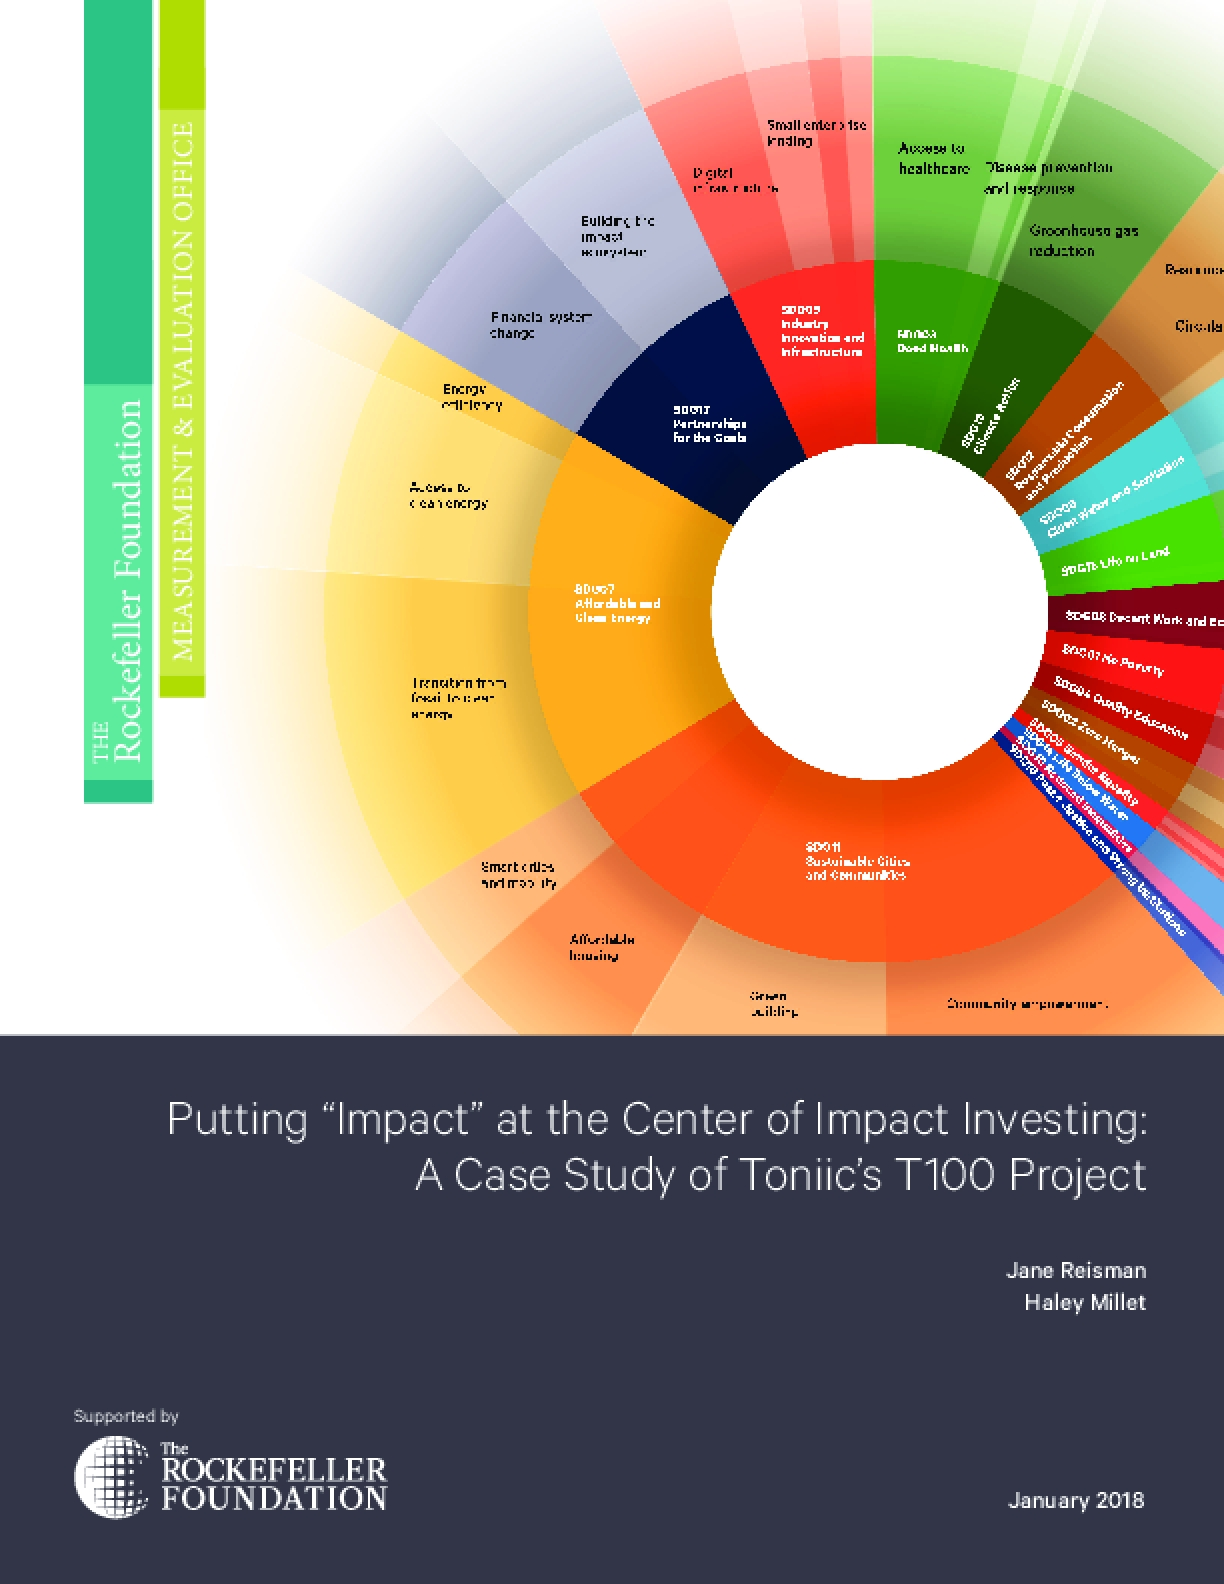 """Putting """"Impact"""" at the Center of Impact Investing: A Case Study of Toniic's T100 Project"""